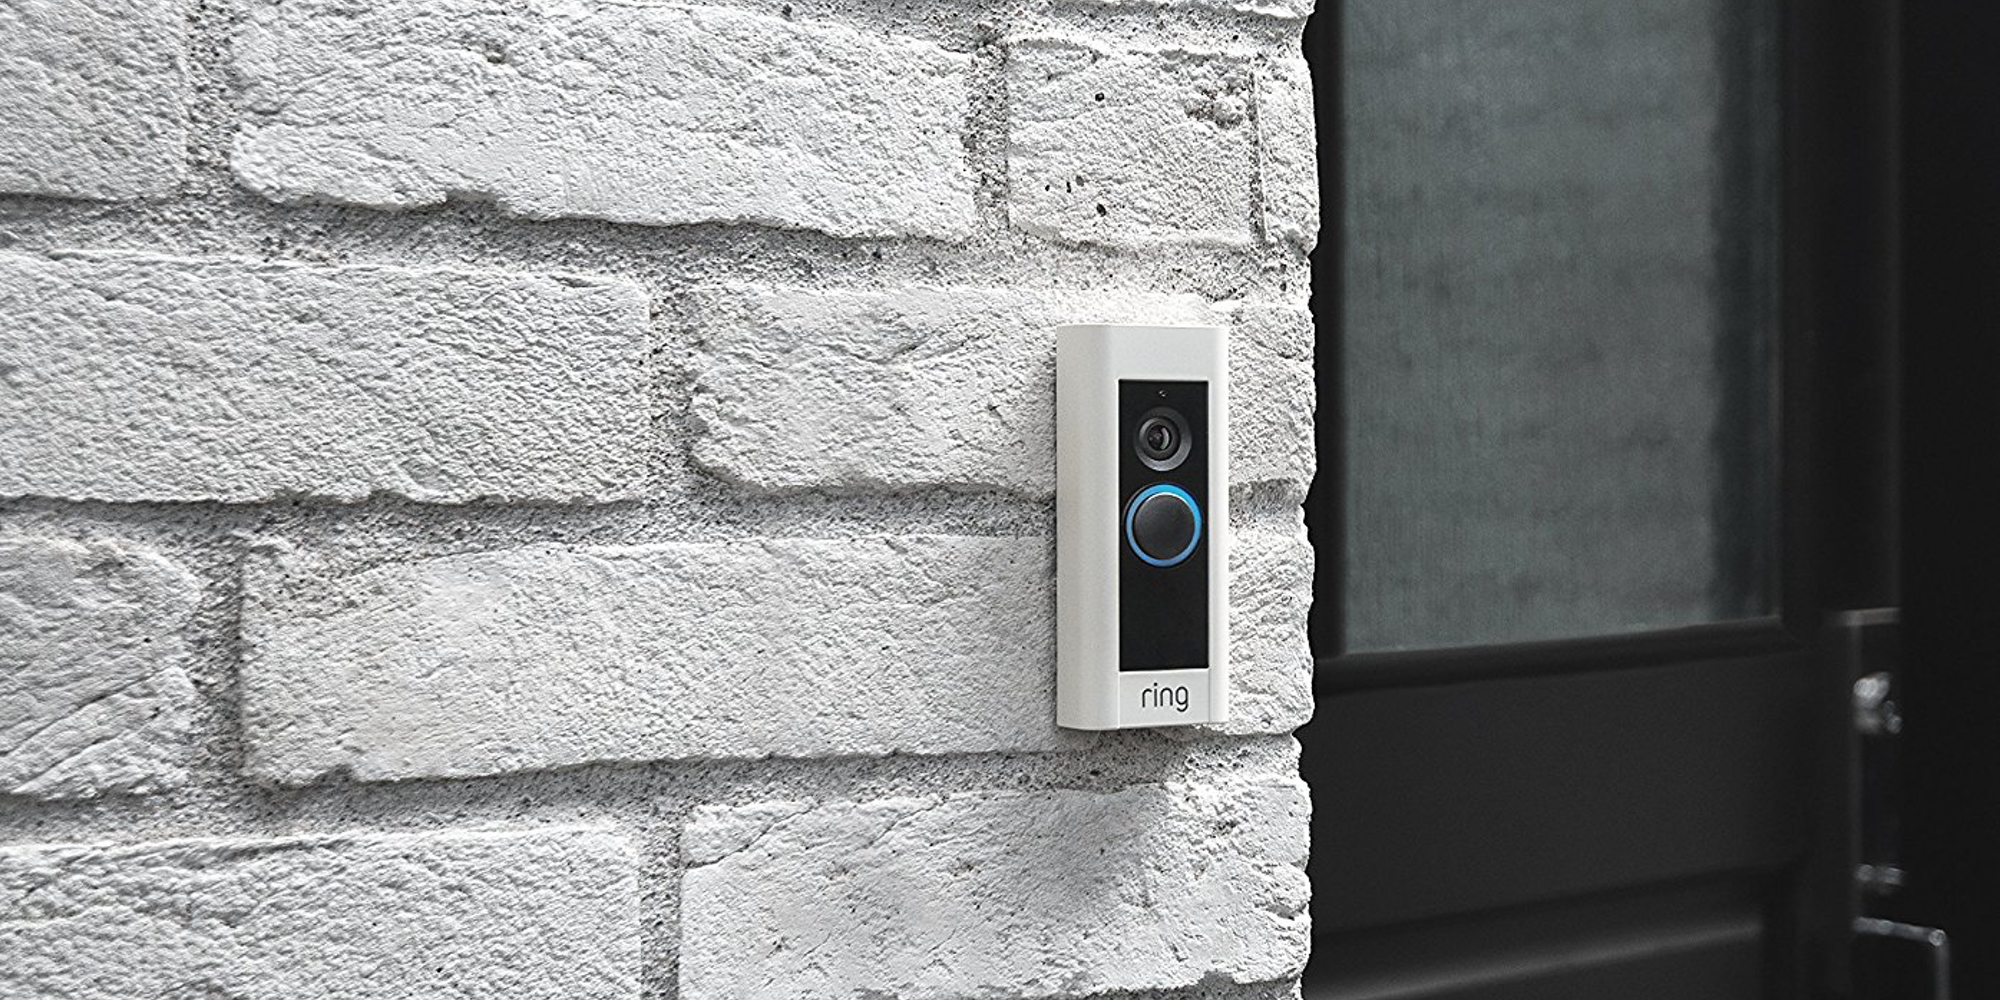 See who's at the door w/ Ring's Video Doorbell Pro, now at a new low of $157 (Reg. $249)